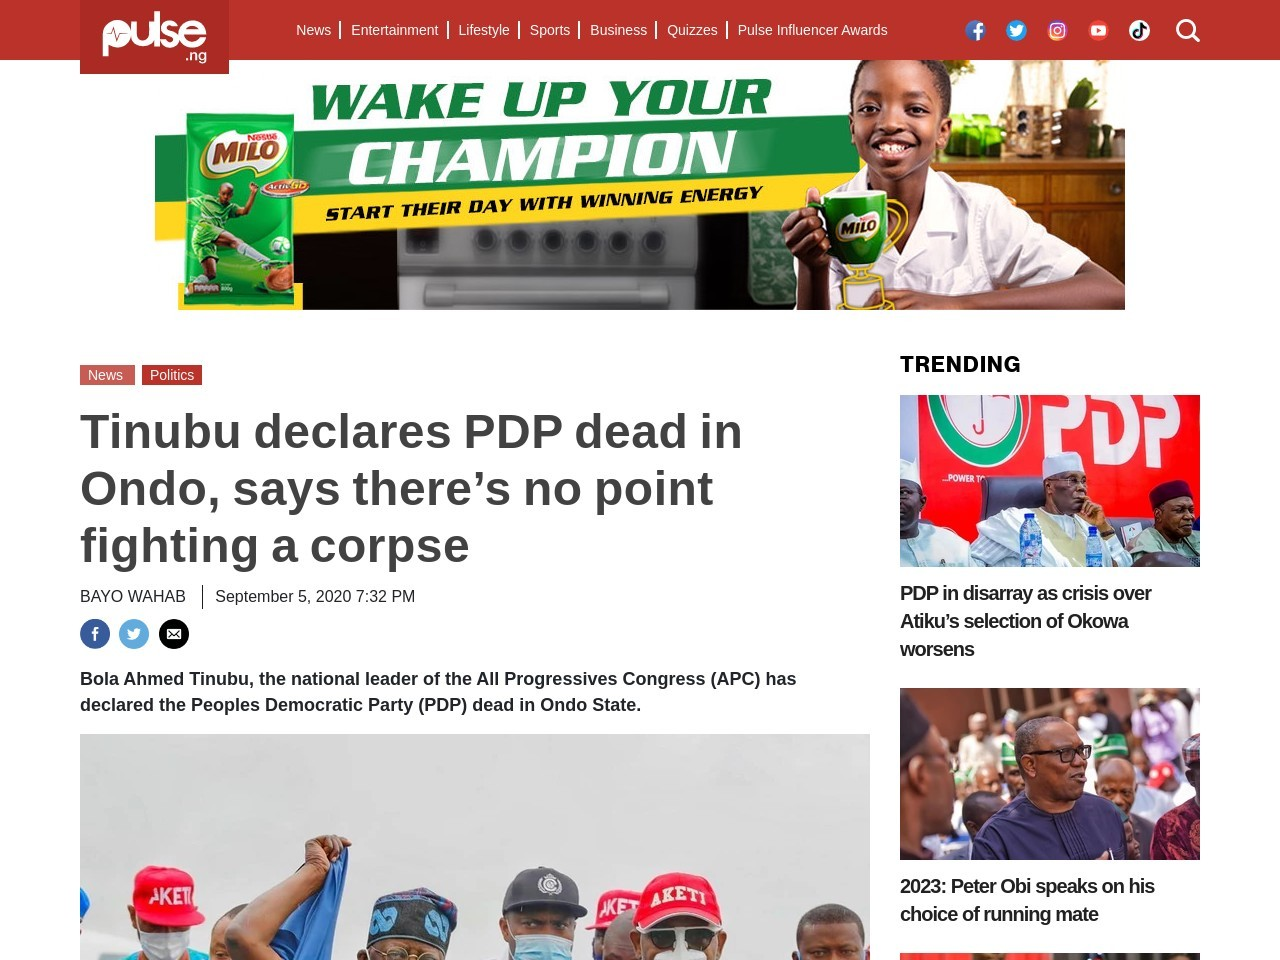 Tinubu declares PDP dead in Ondo, says there's no point fighting a corpse